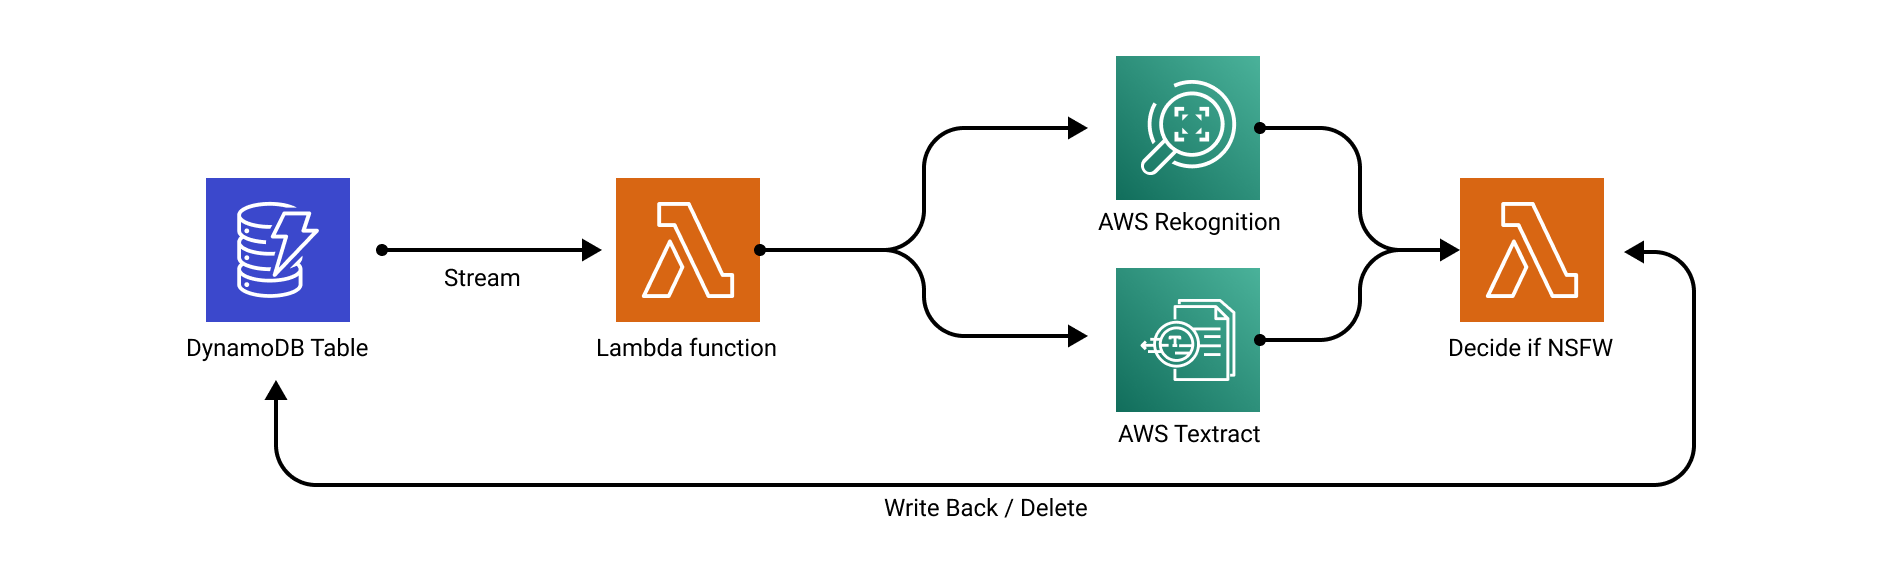 DynamoDB content moderation using Streams and AI